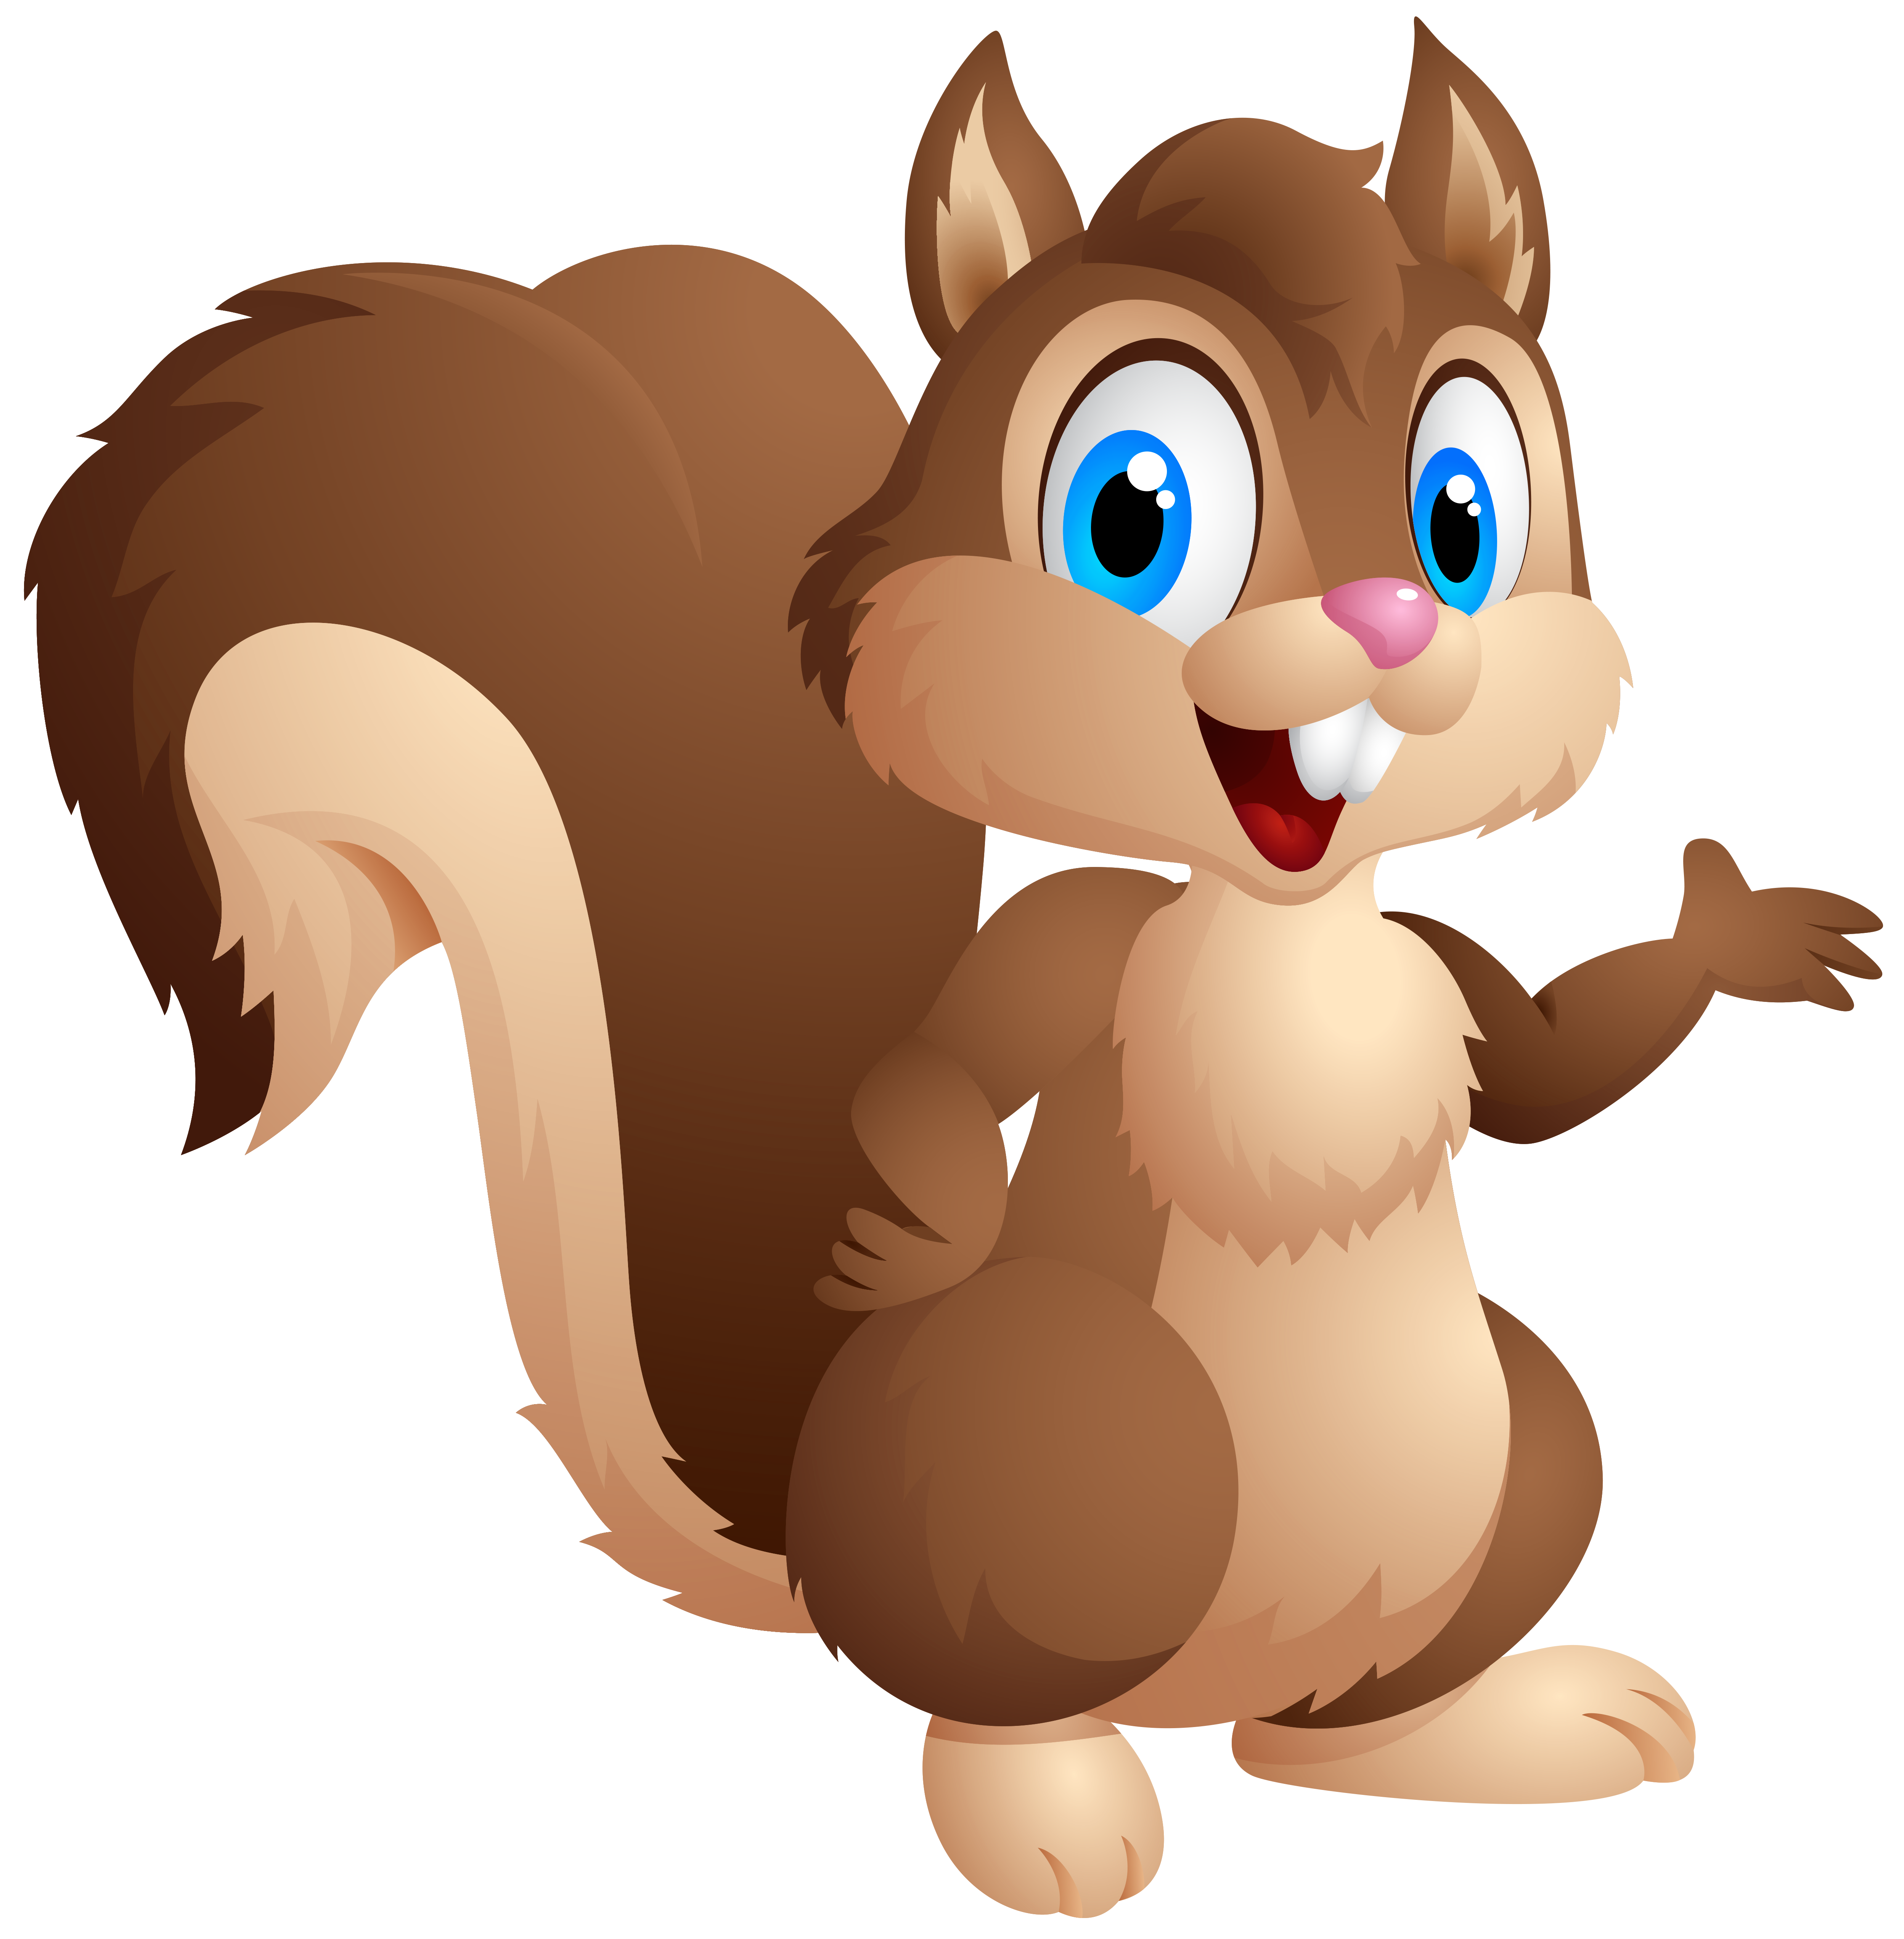 Clip art for free picture royalty free stock Squirrel clipart free clipart | Chipmunk | Pinterest | Squirrel ... picture royalty free stock